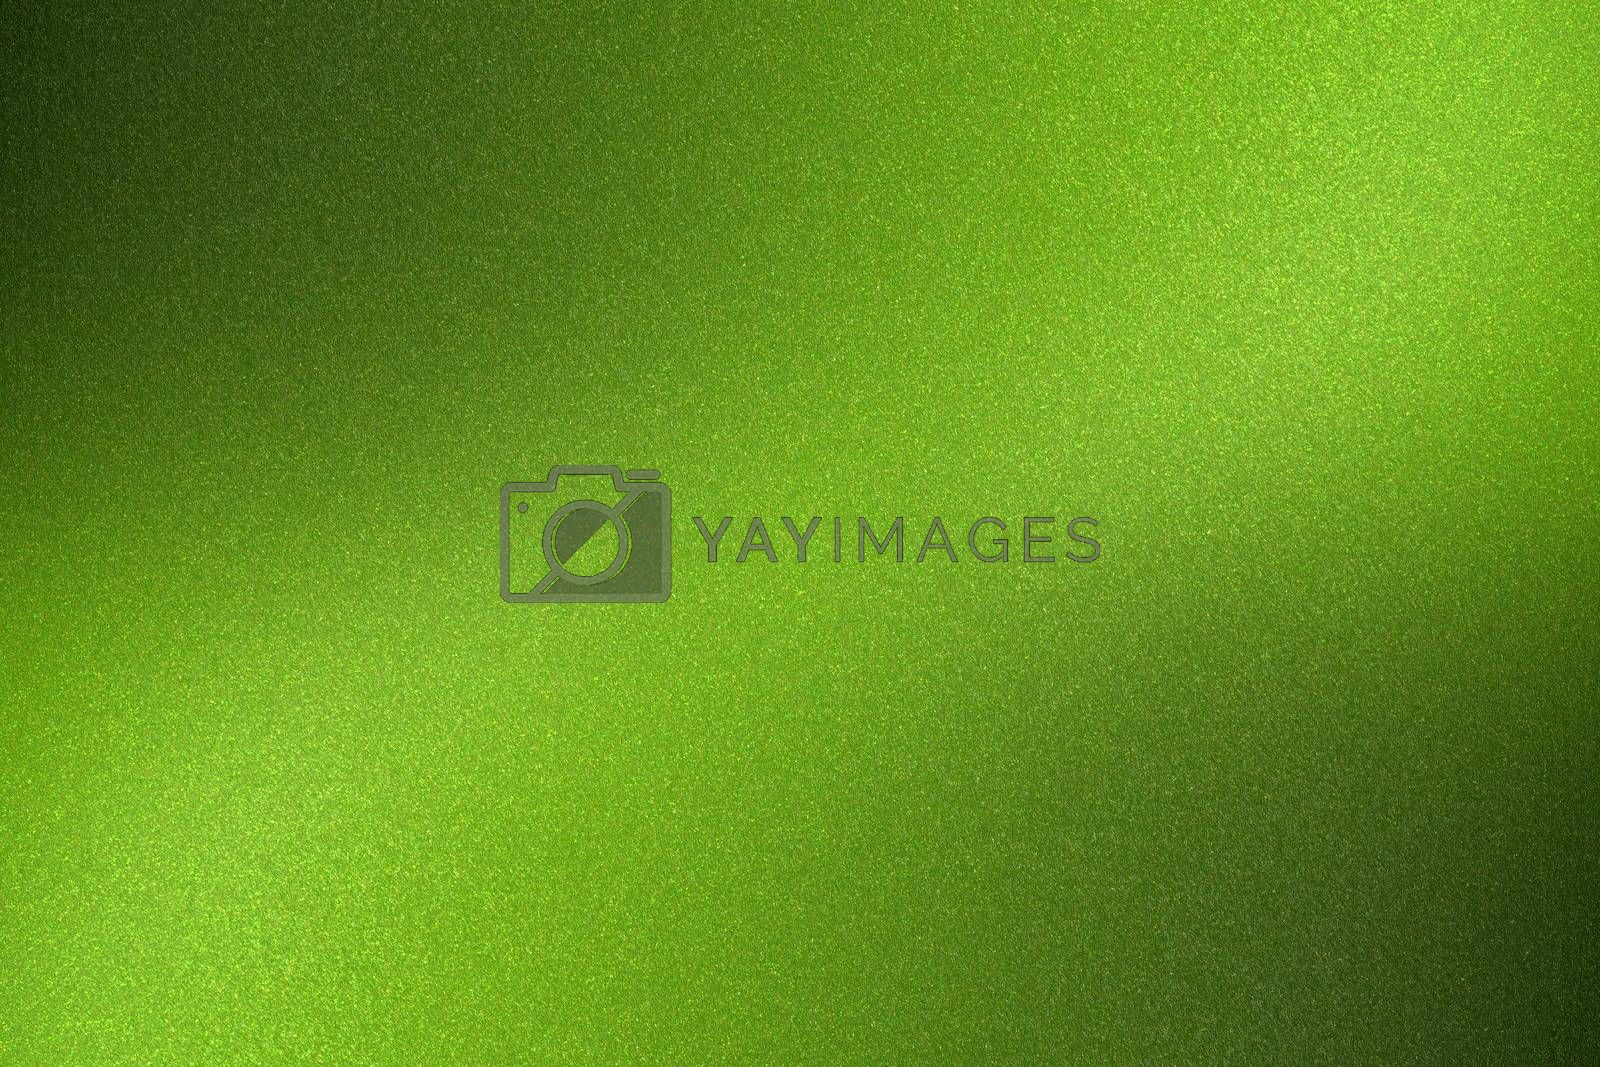 Glowing brushed green metal wall surface, abstract texture background by mouu007